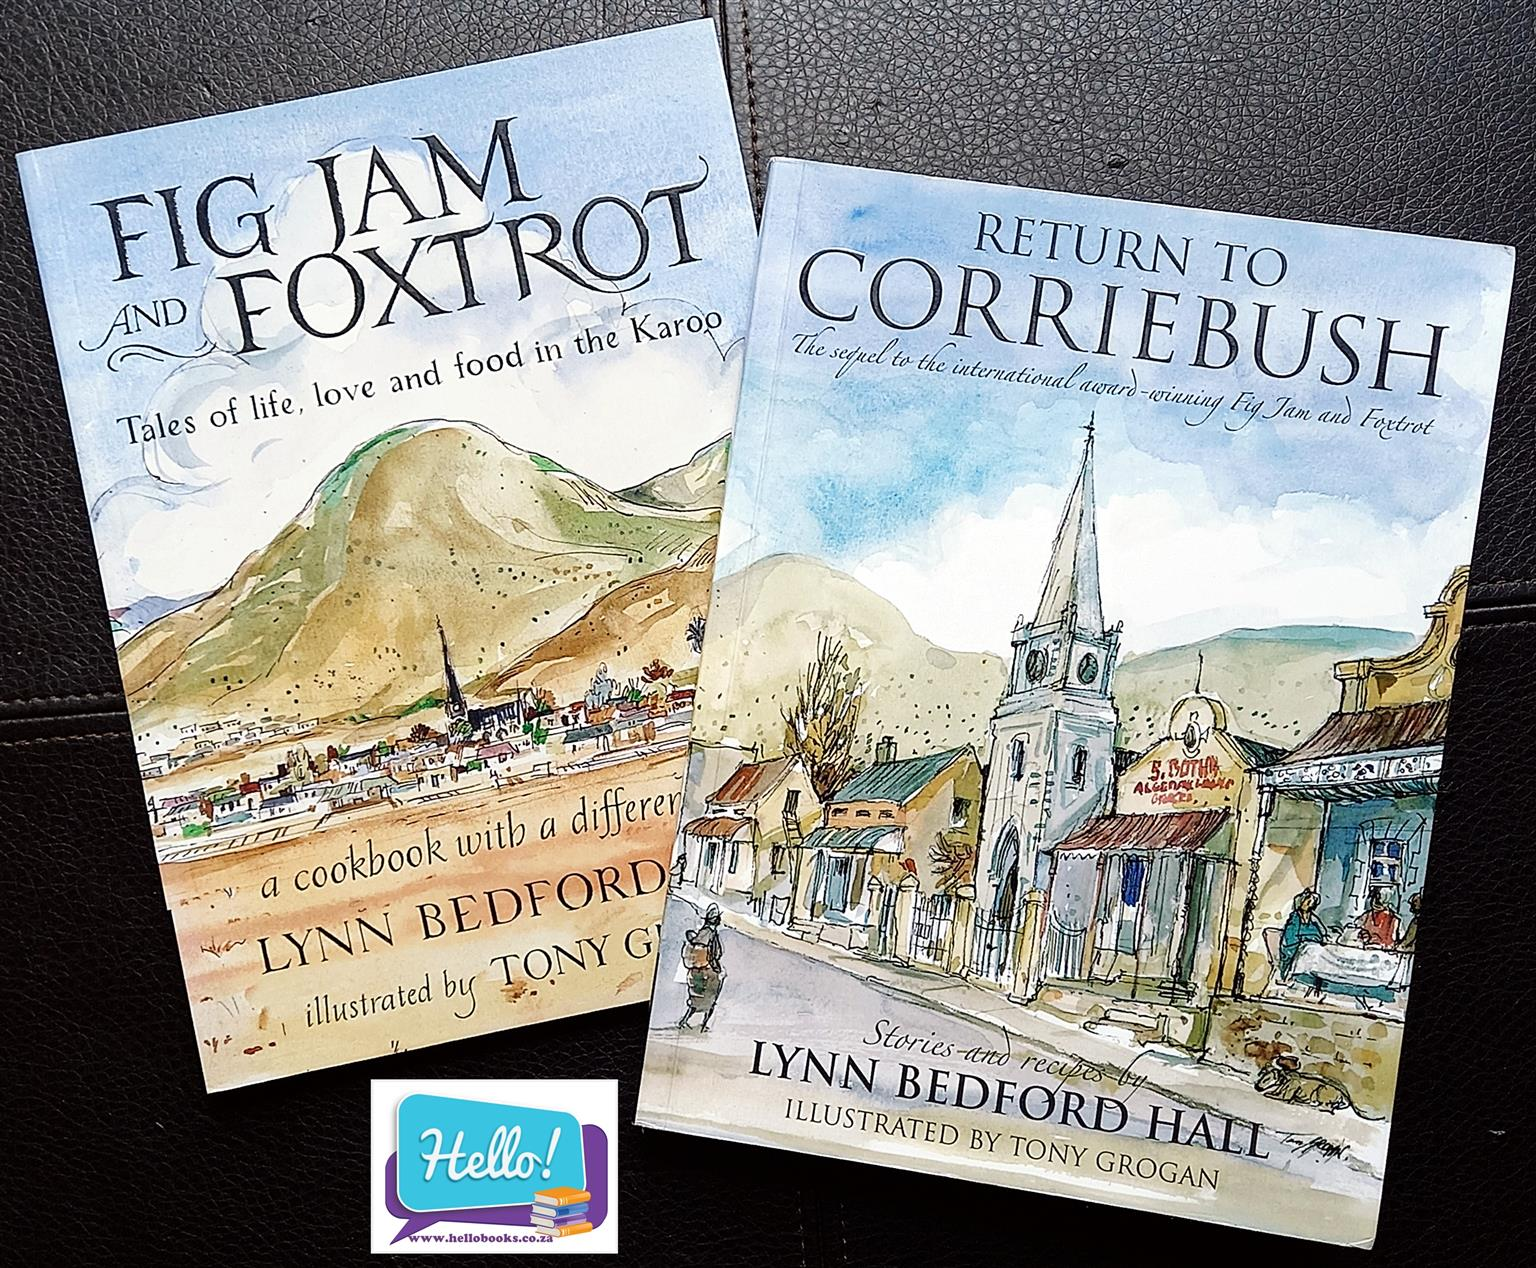 Explore Books by Lyn Bedford